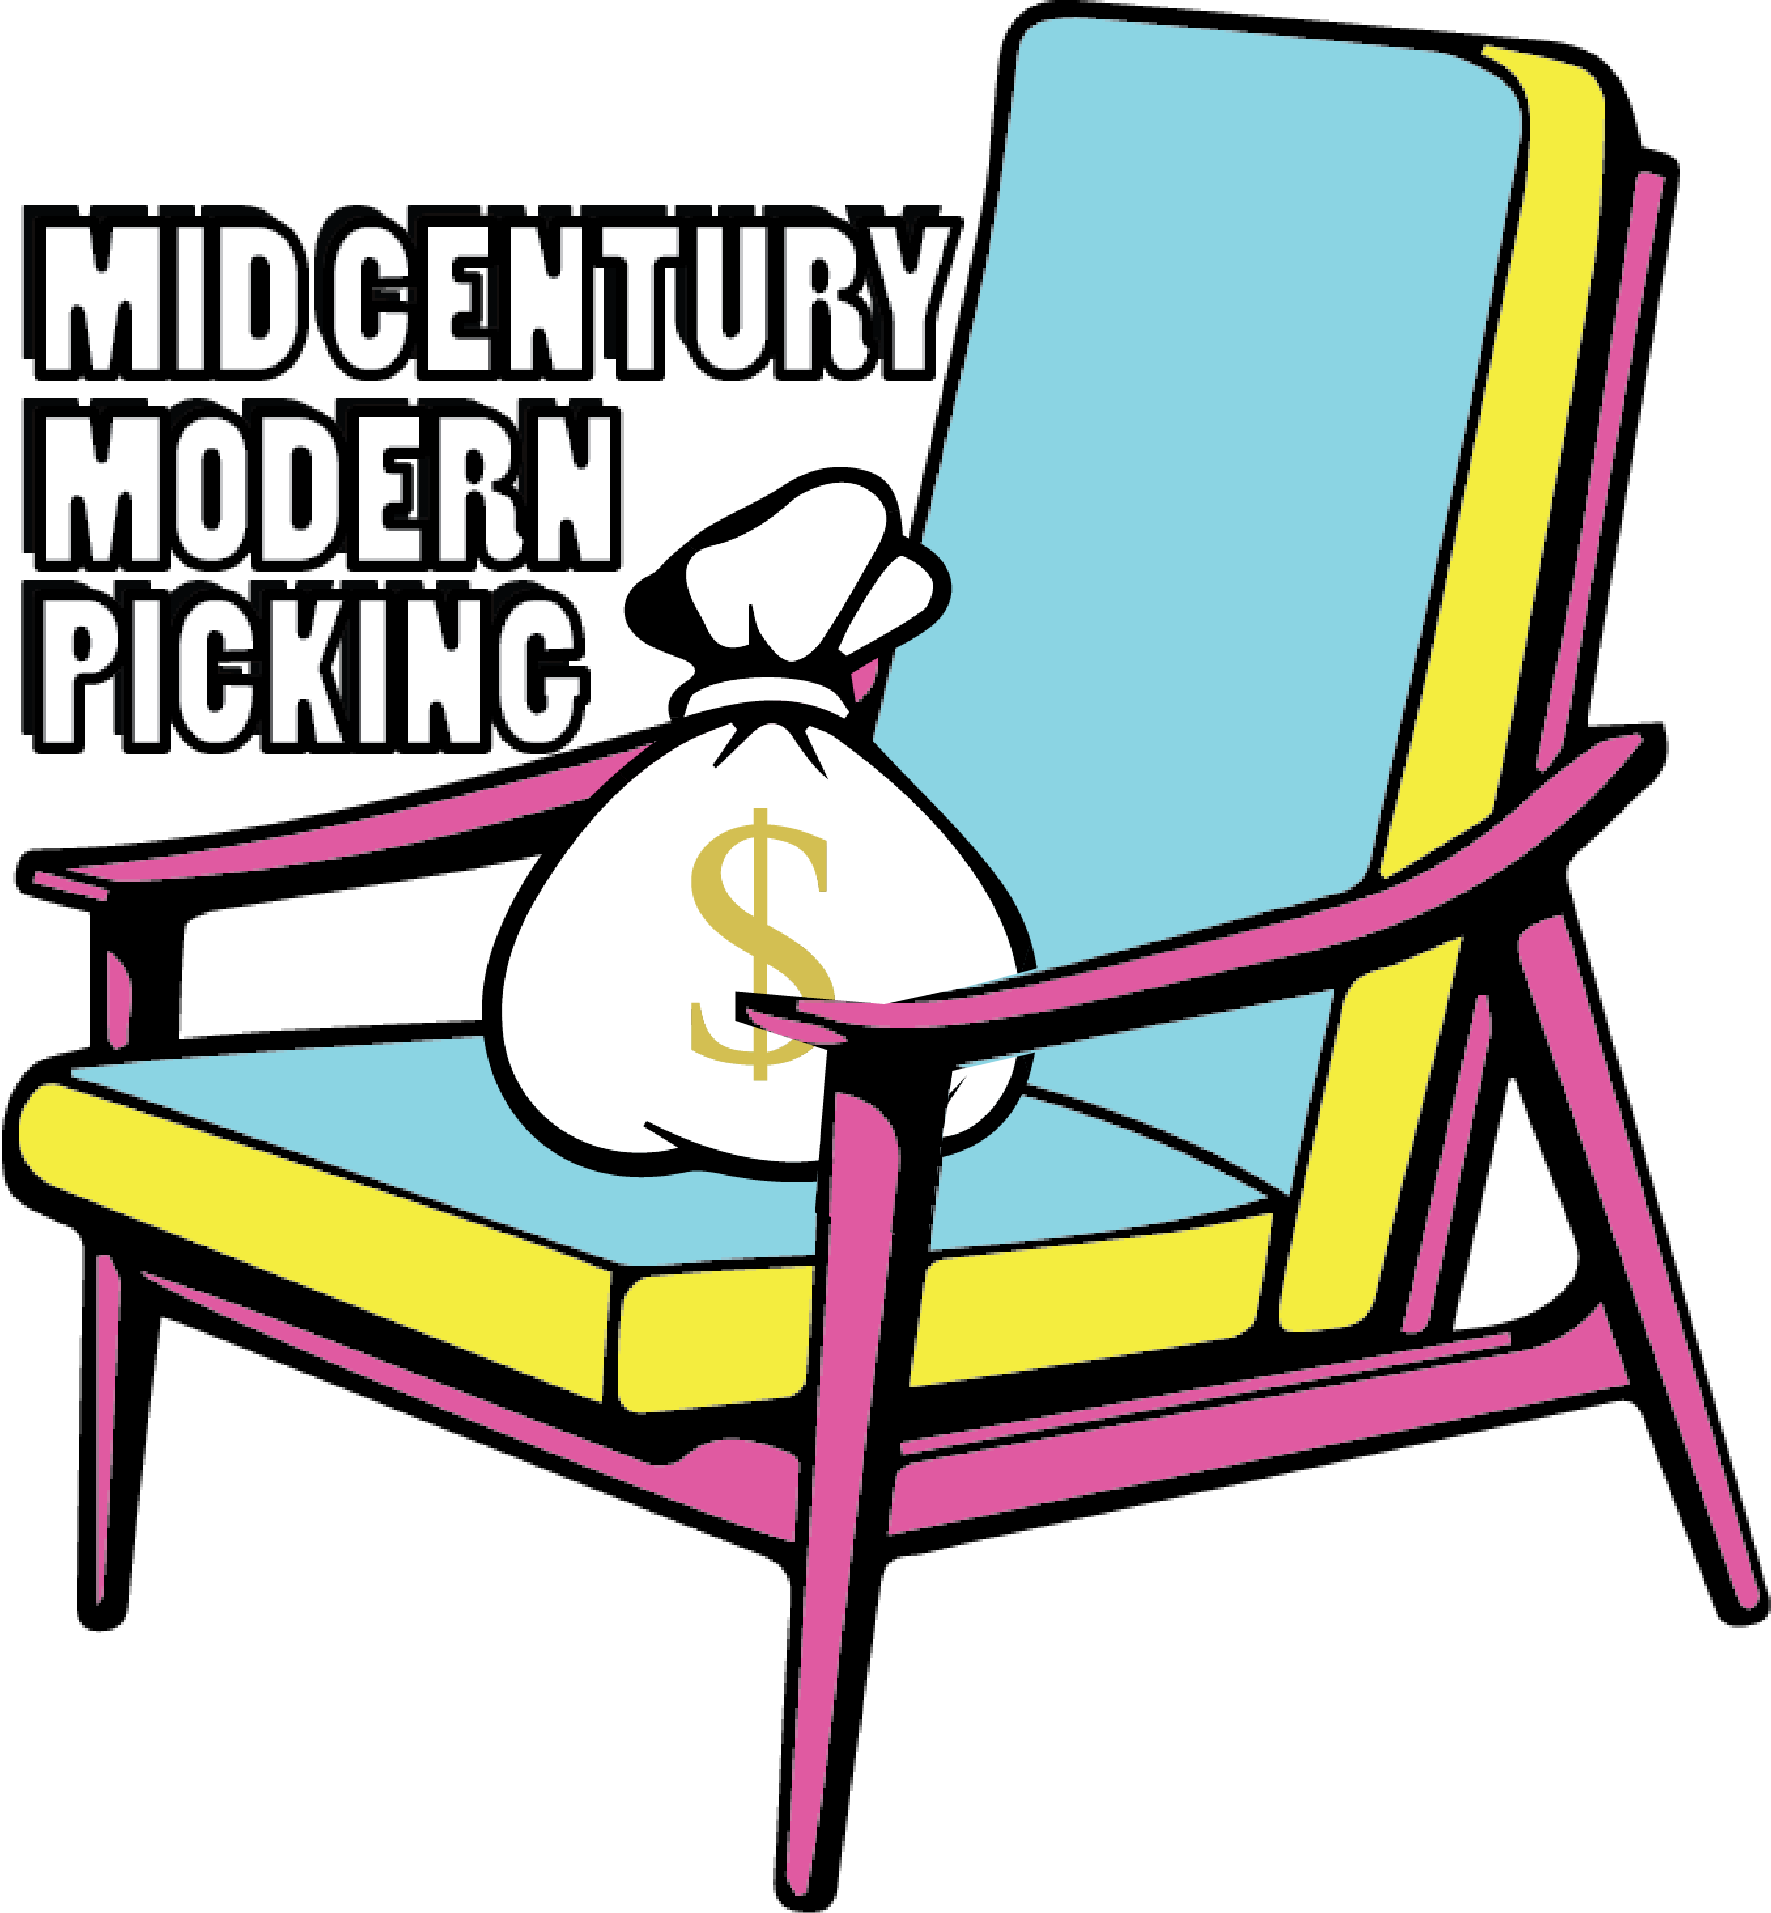 Furniture clipart furniture removal. Mid century modern how